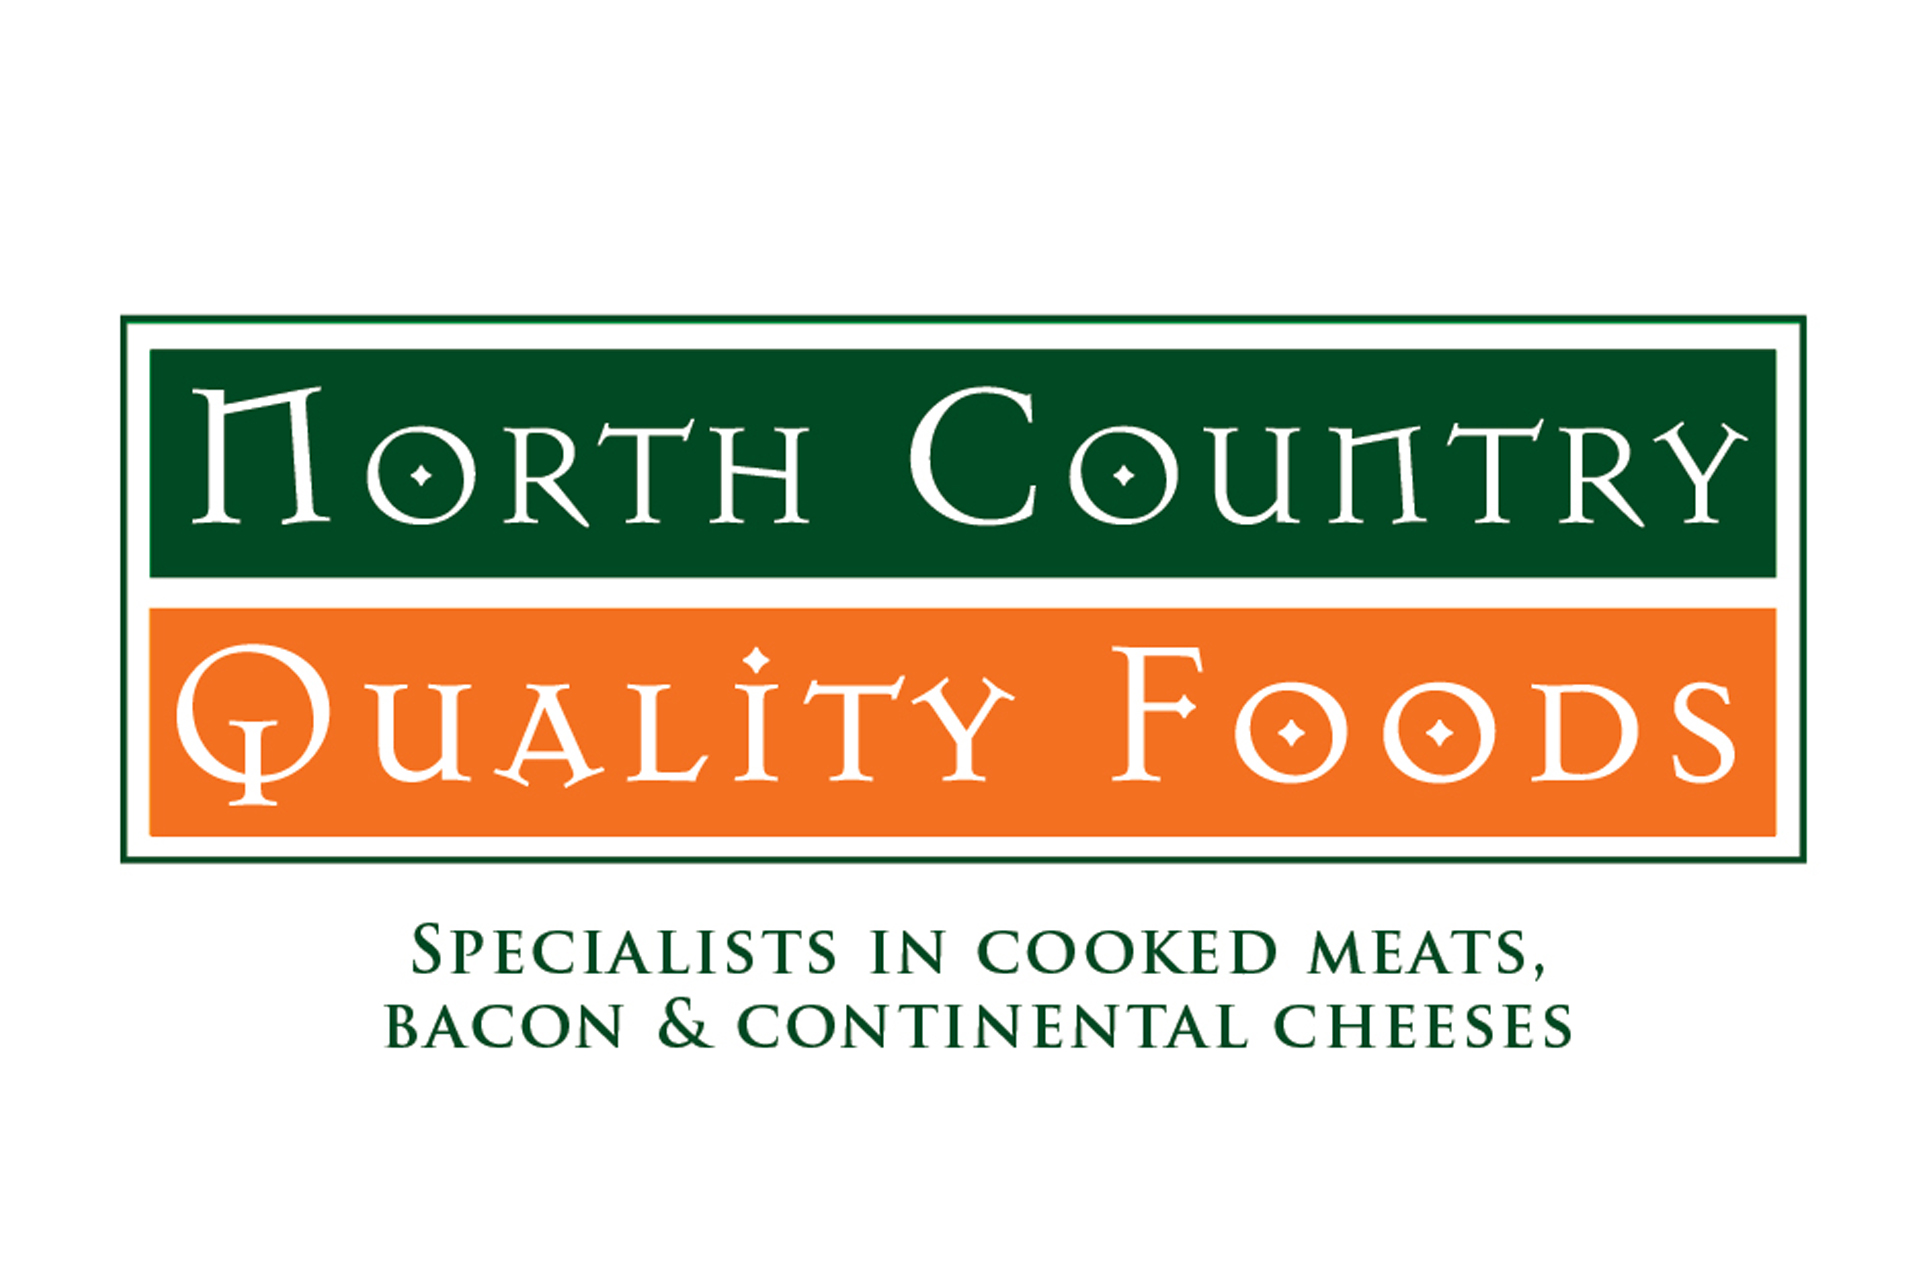 North Country Quality Foods Appoint Onside PR